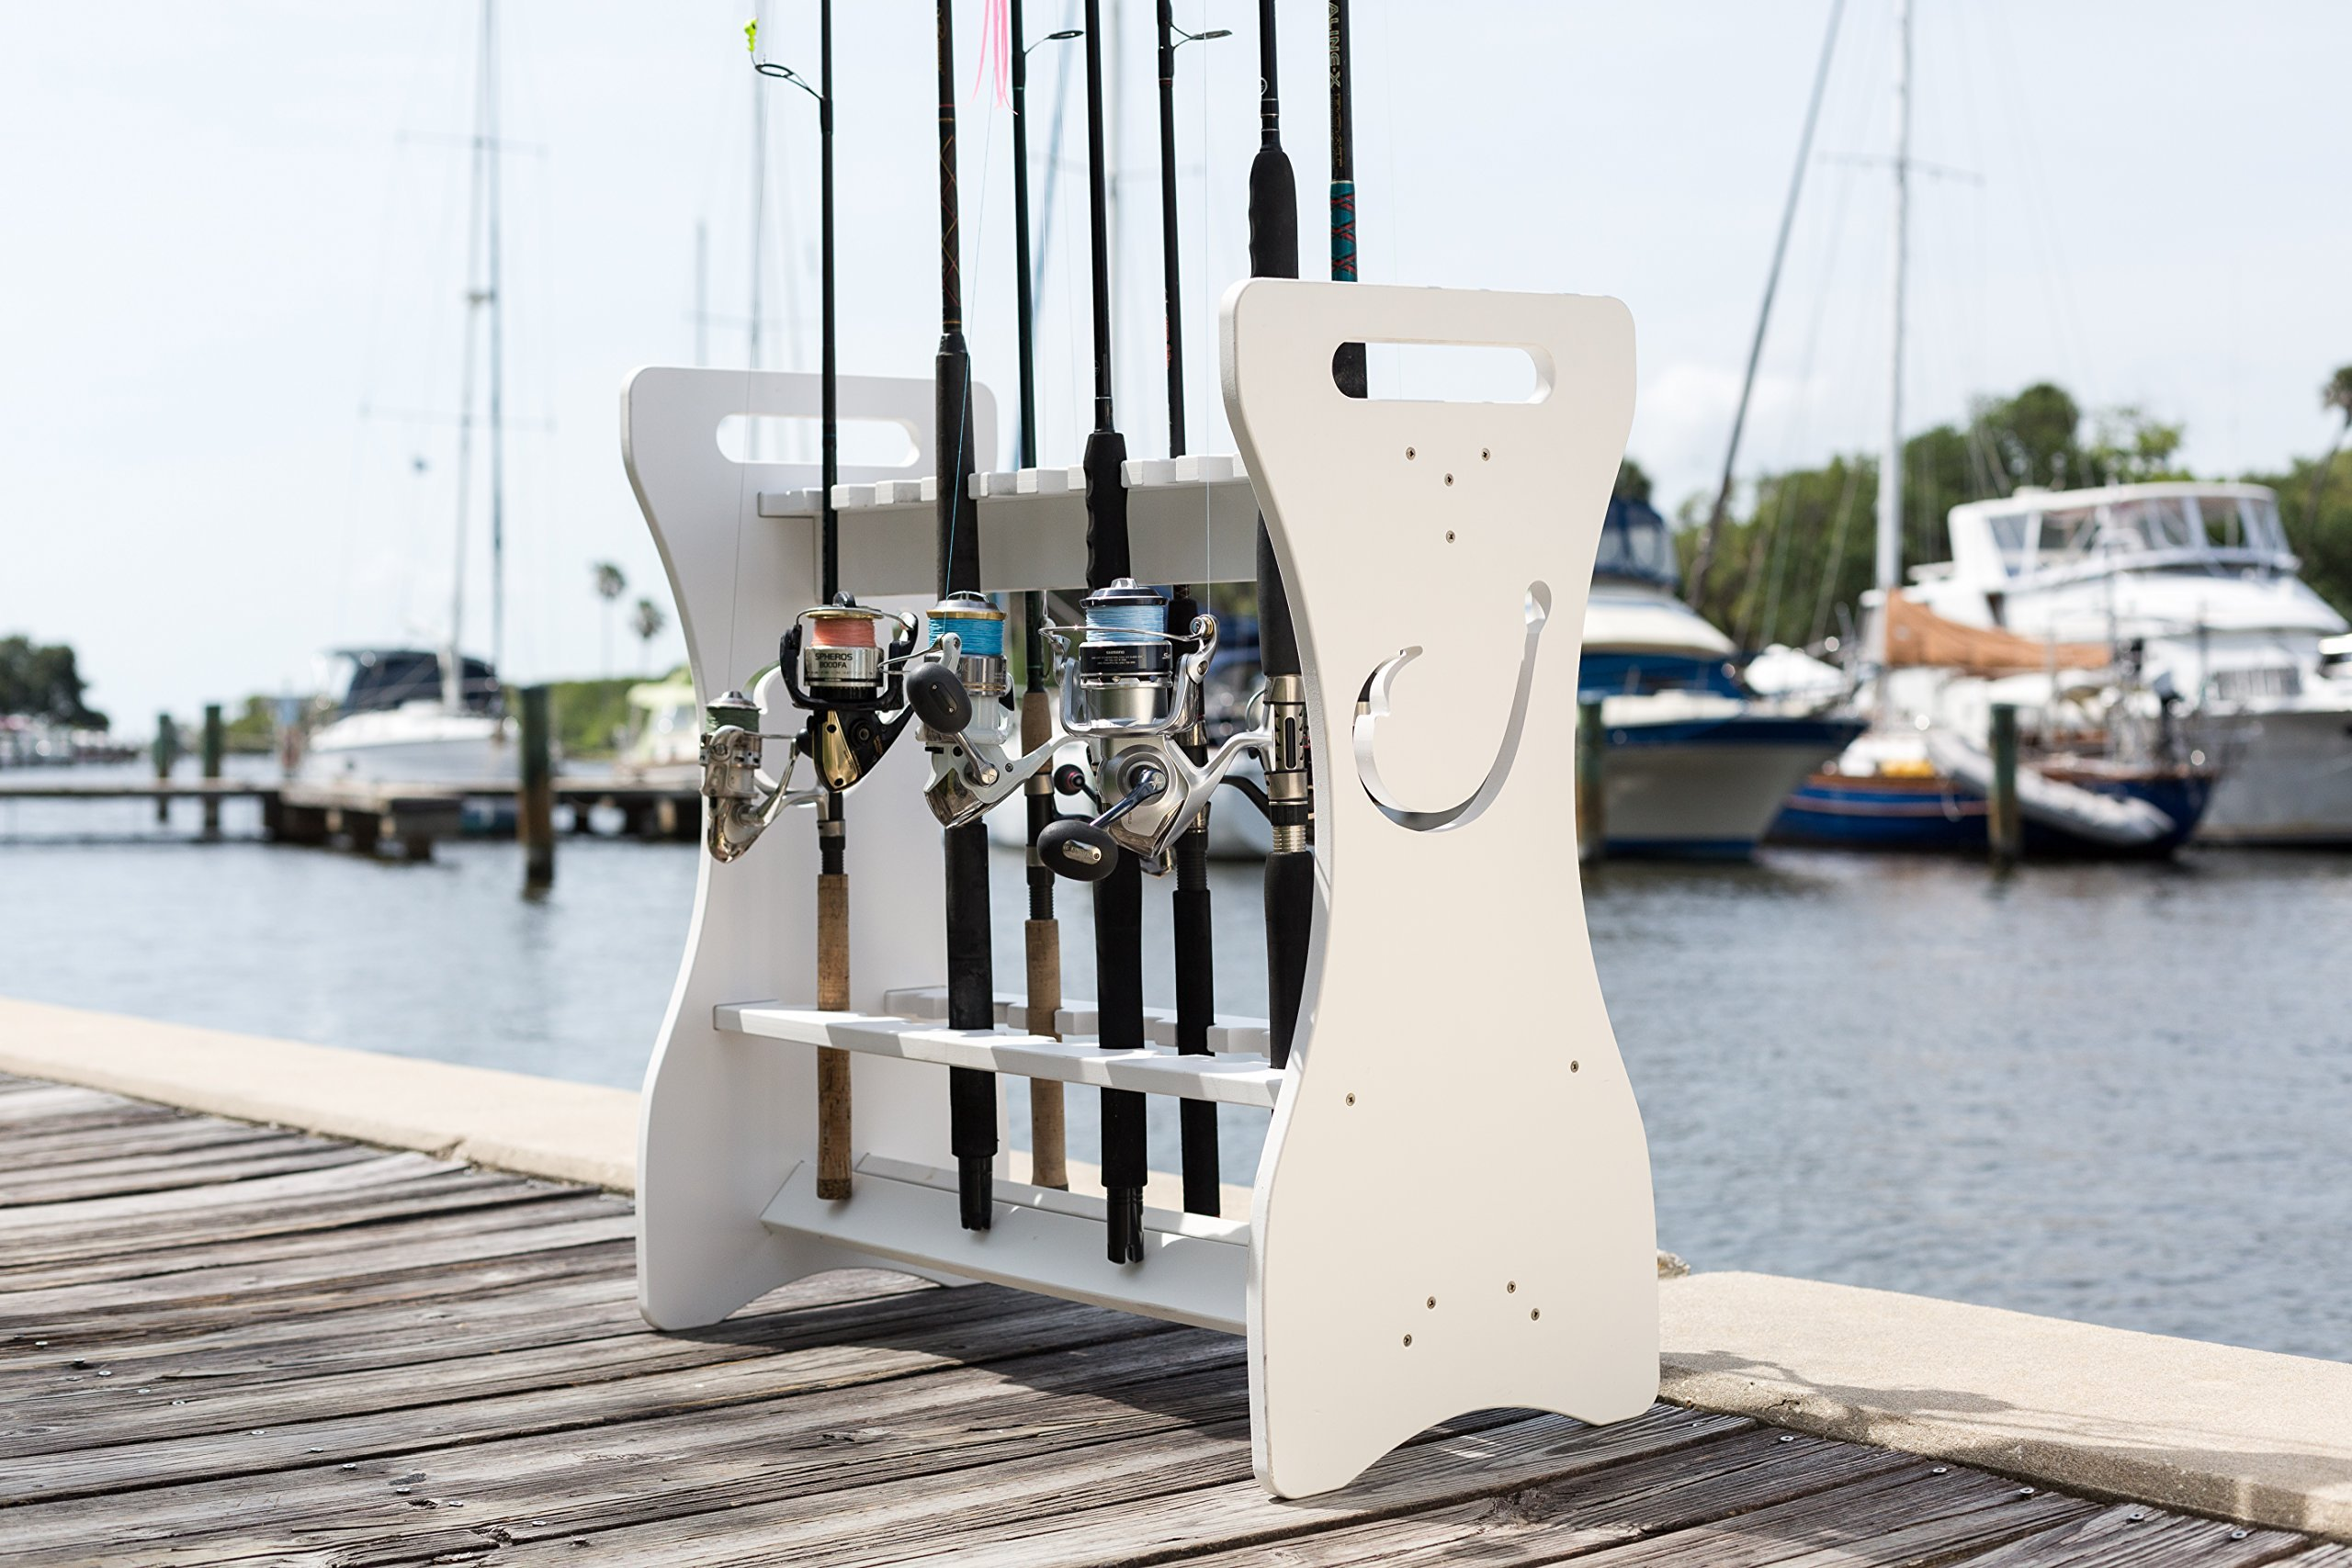 Fishing Rod Rack - Hook Design - Store and Organize up to 24 Fishing Rods and Reels by Sea Racks